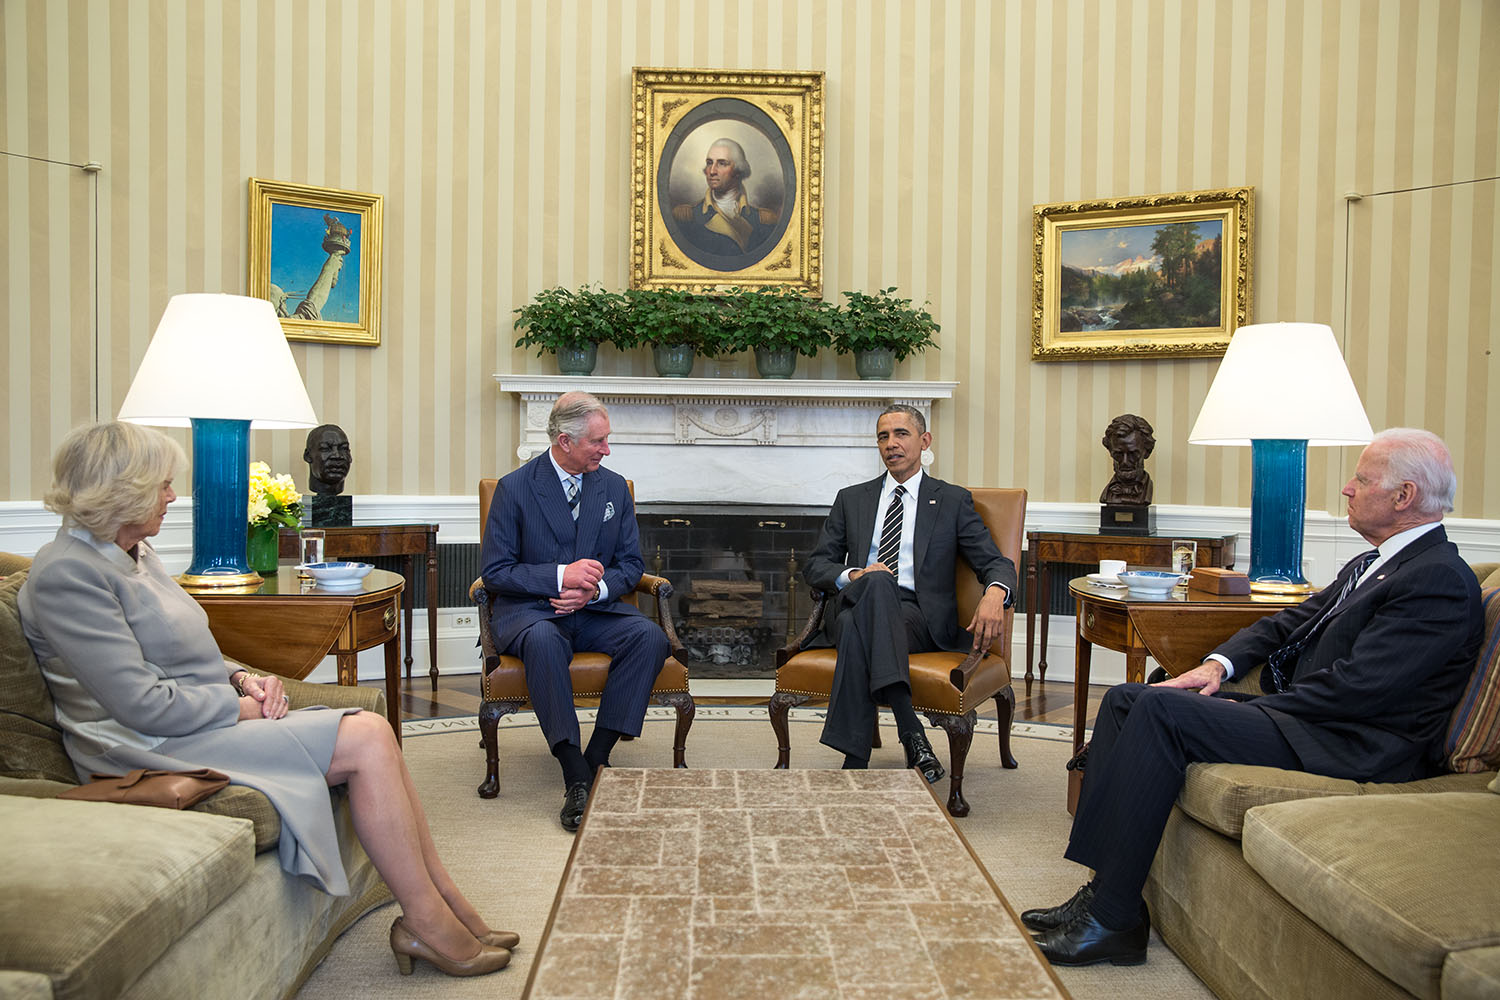 Prince Charles and the Duchess of Cornwall meet with President Obama and Vice President Biden in the Oval Office